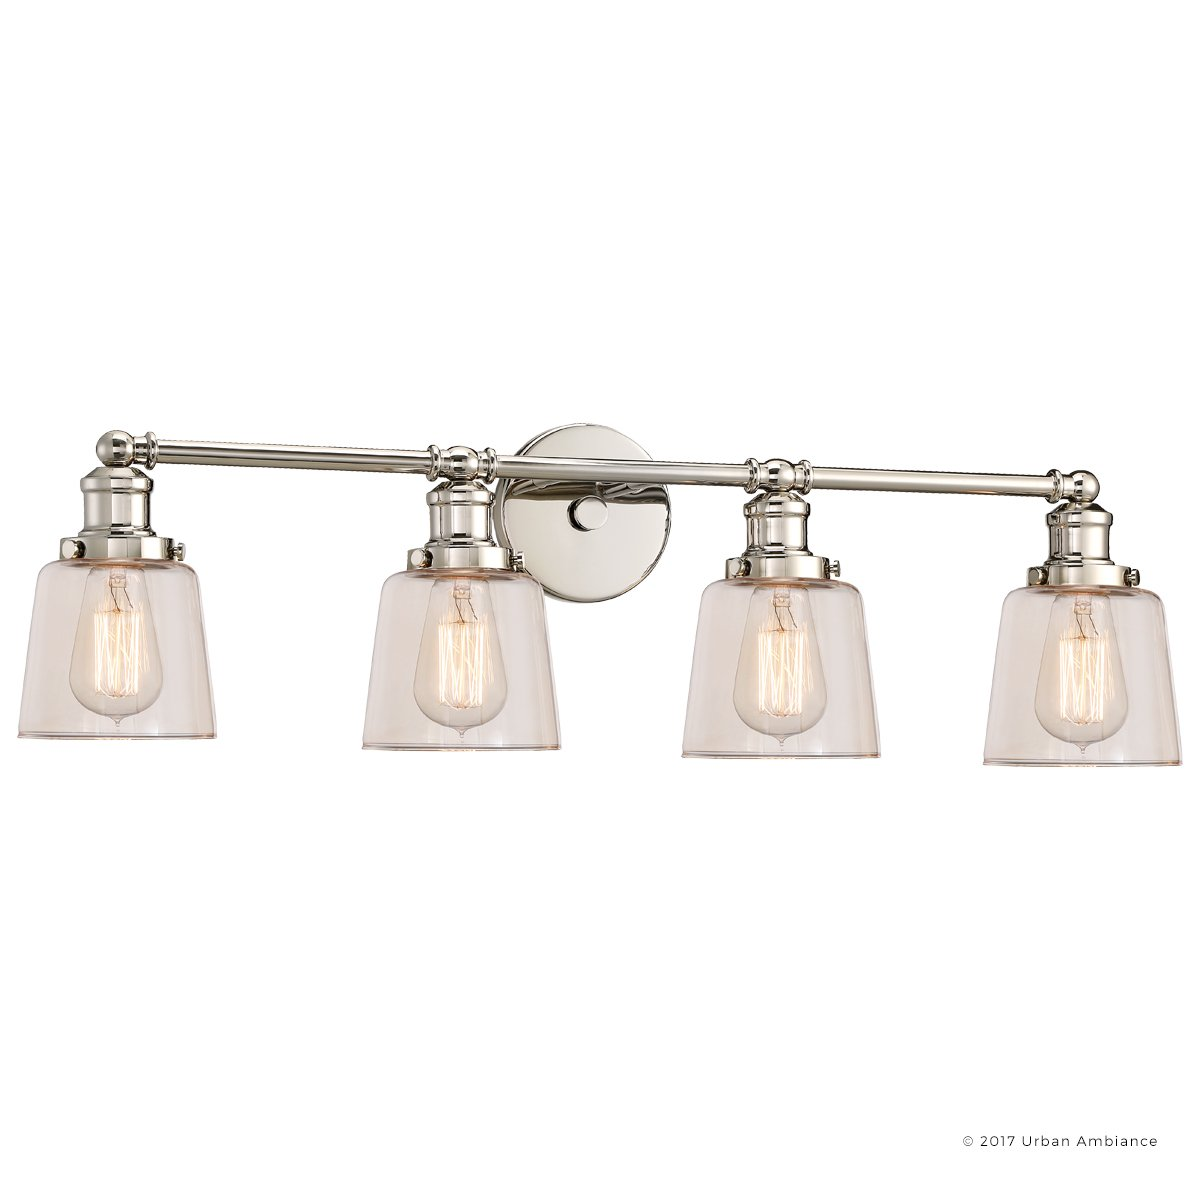 Luxury Industrial Chic Bathroom Vanity Light, Large Size: 9''H x 31.5''W, with Modern Style Elements, Nostalgic Design, Polished Nickel Finish and Light Champagne Glass, UQL2682 by Urban Ambiance